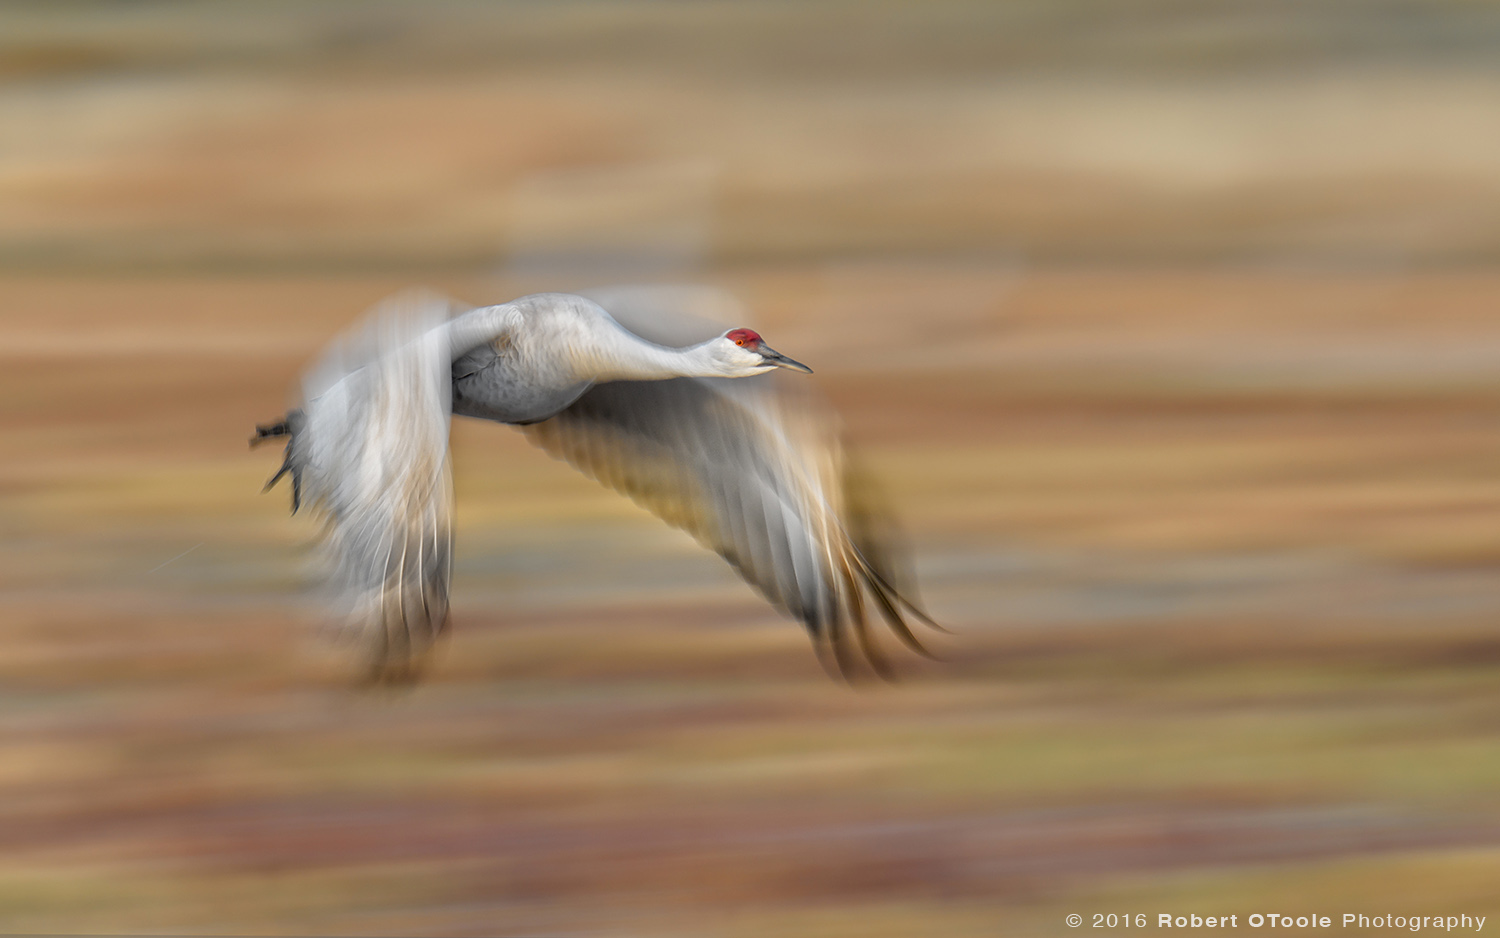 Sandhill Crane Flying at 1/25th s